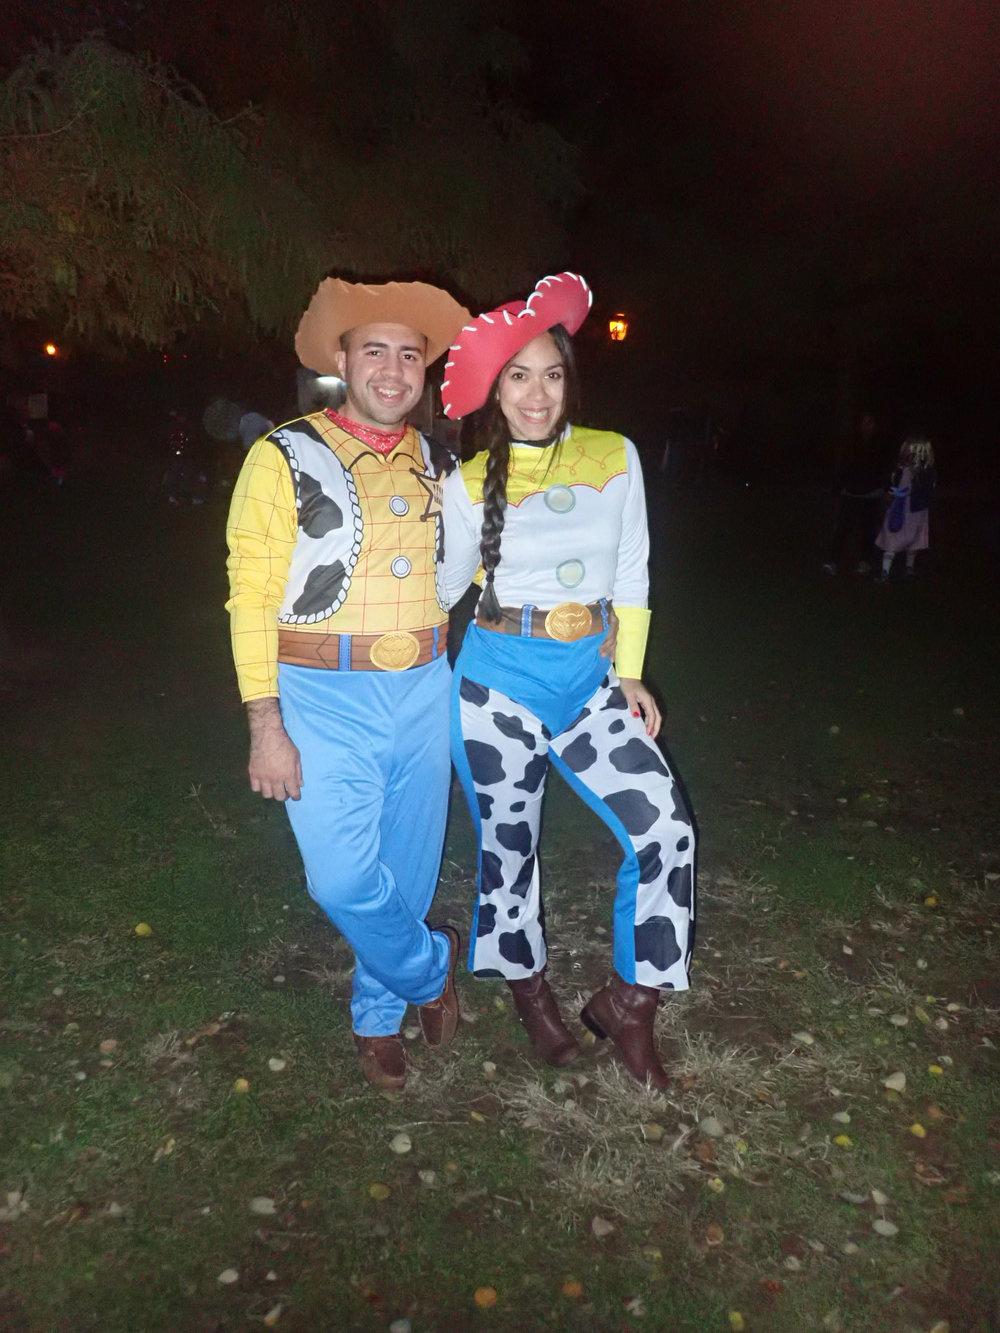 Woody and Jessie couple Halloween costumes